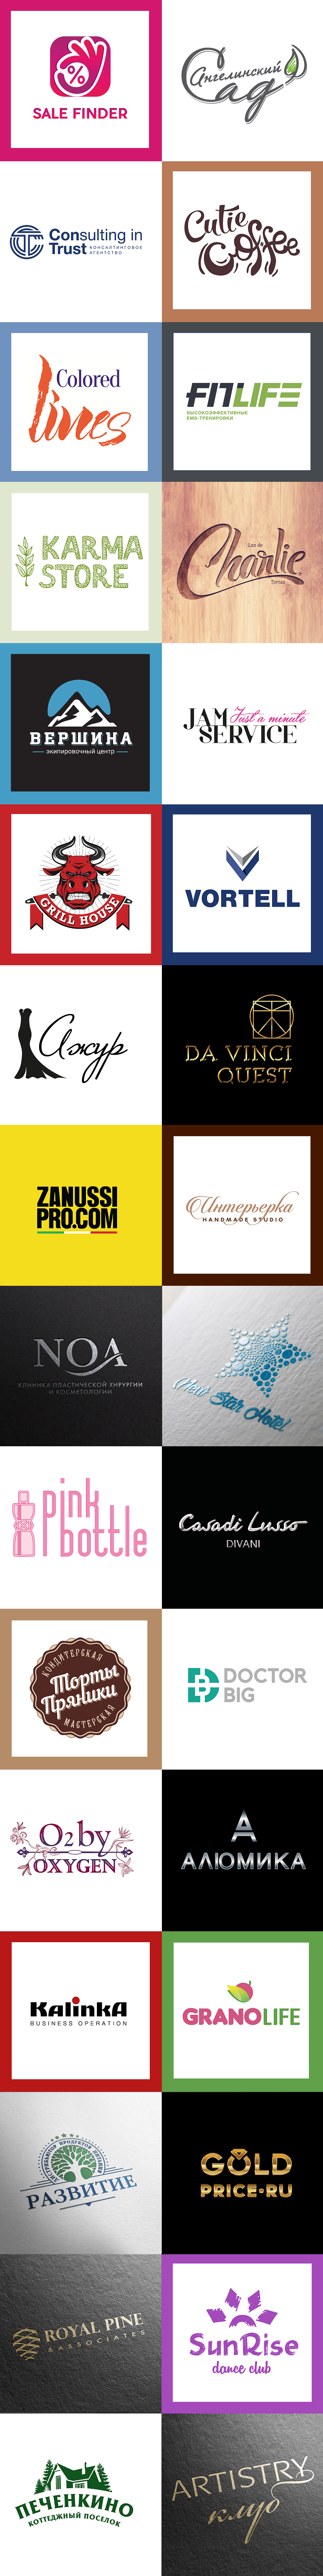 Logotype & trademark design